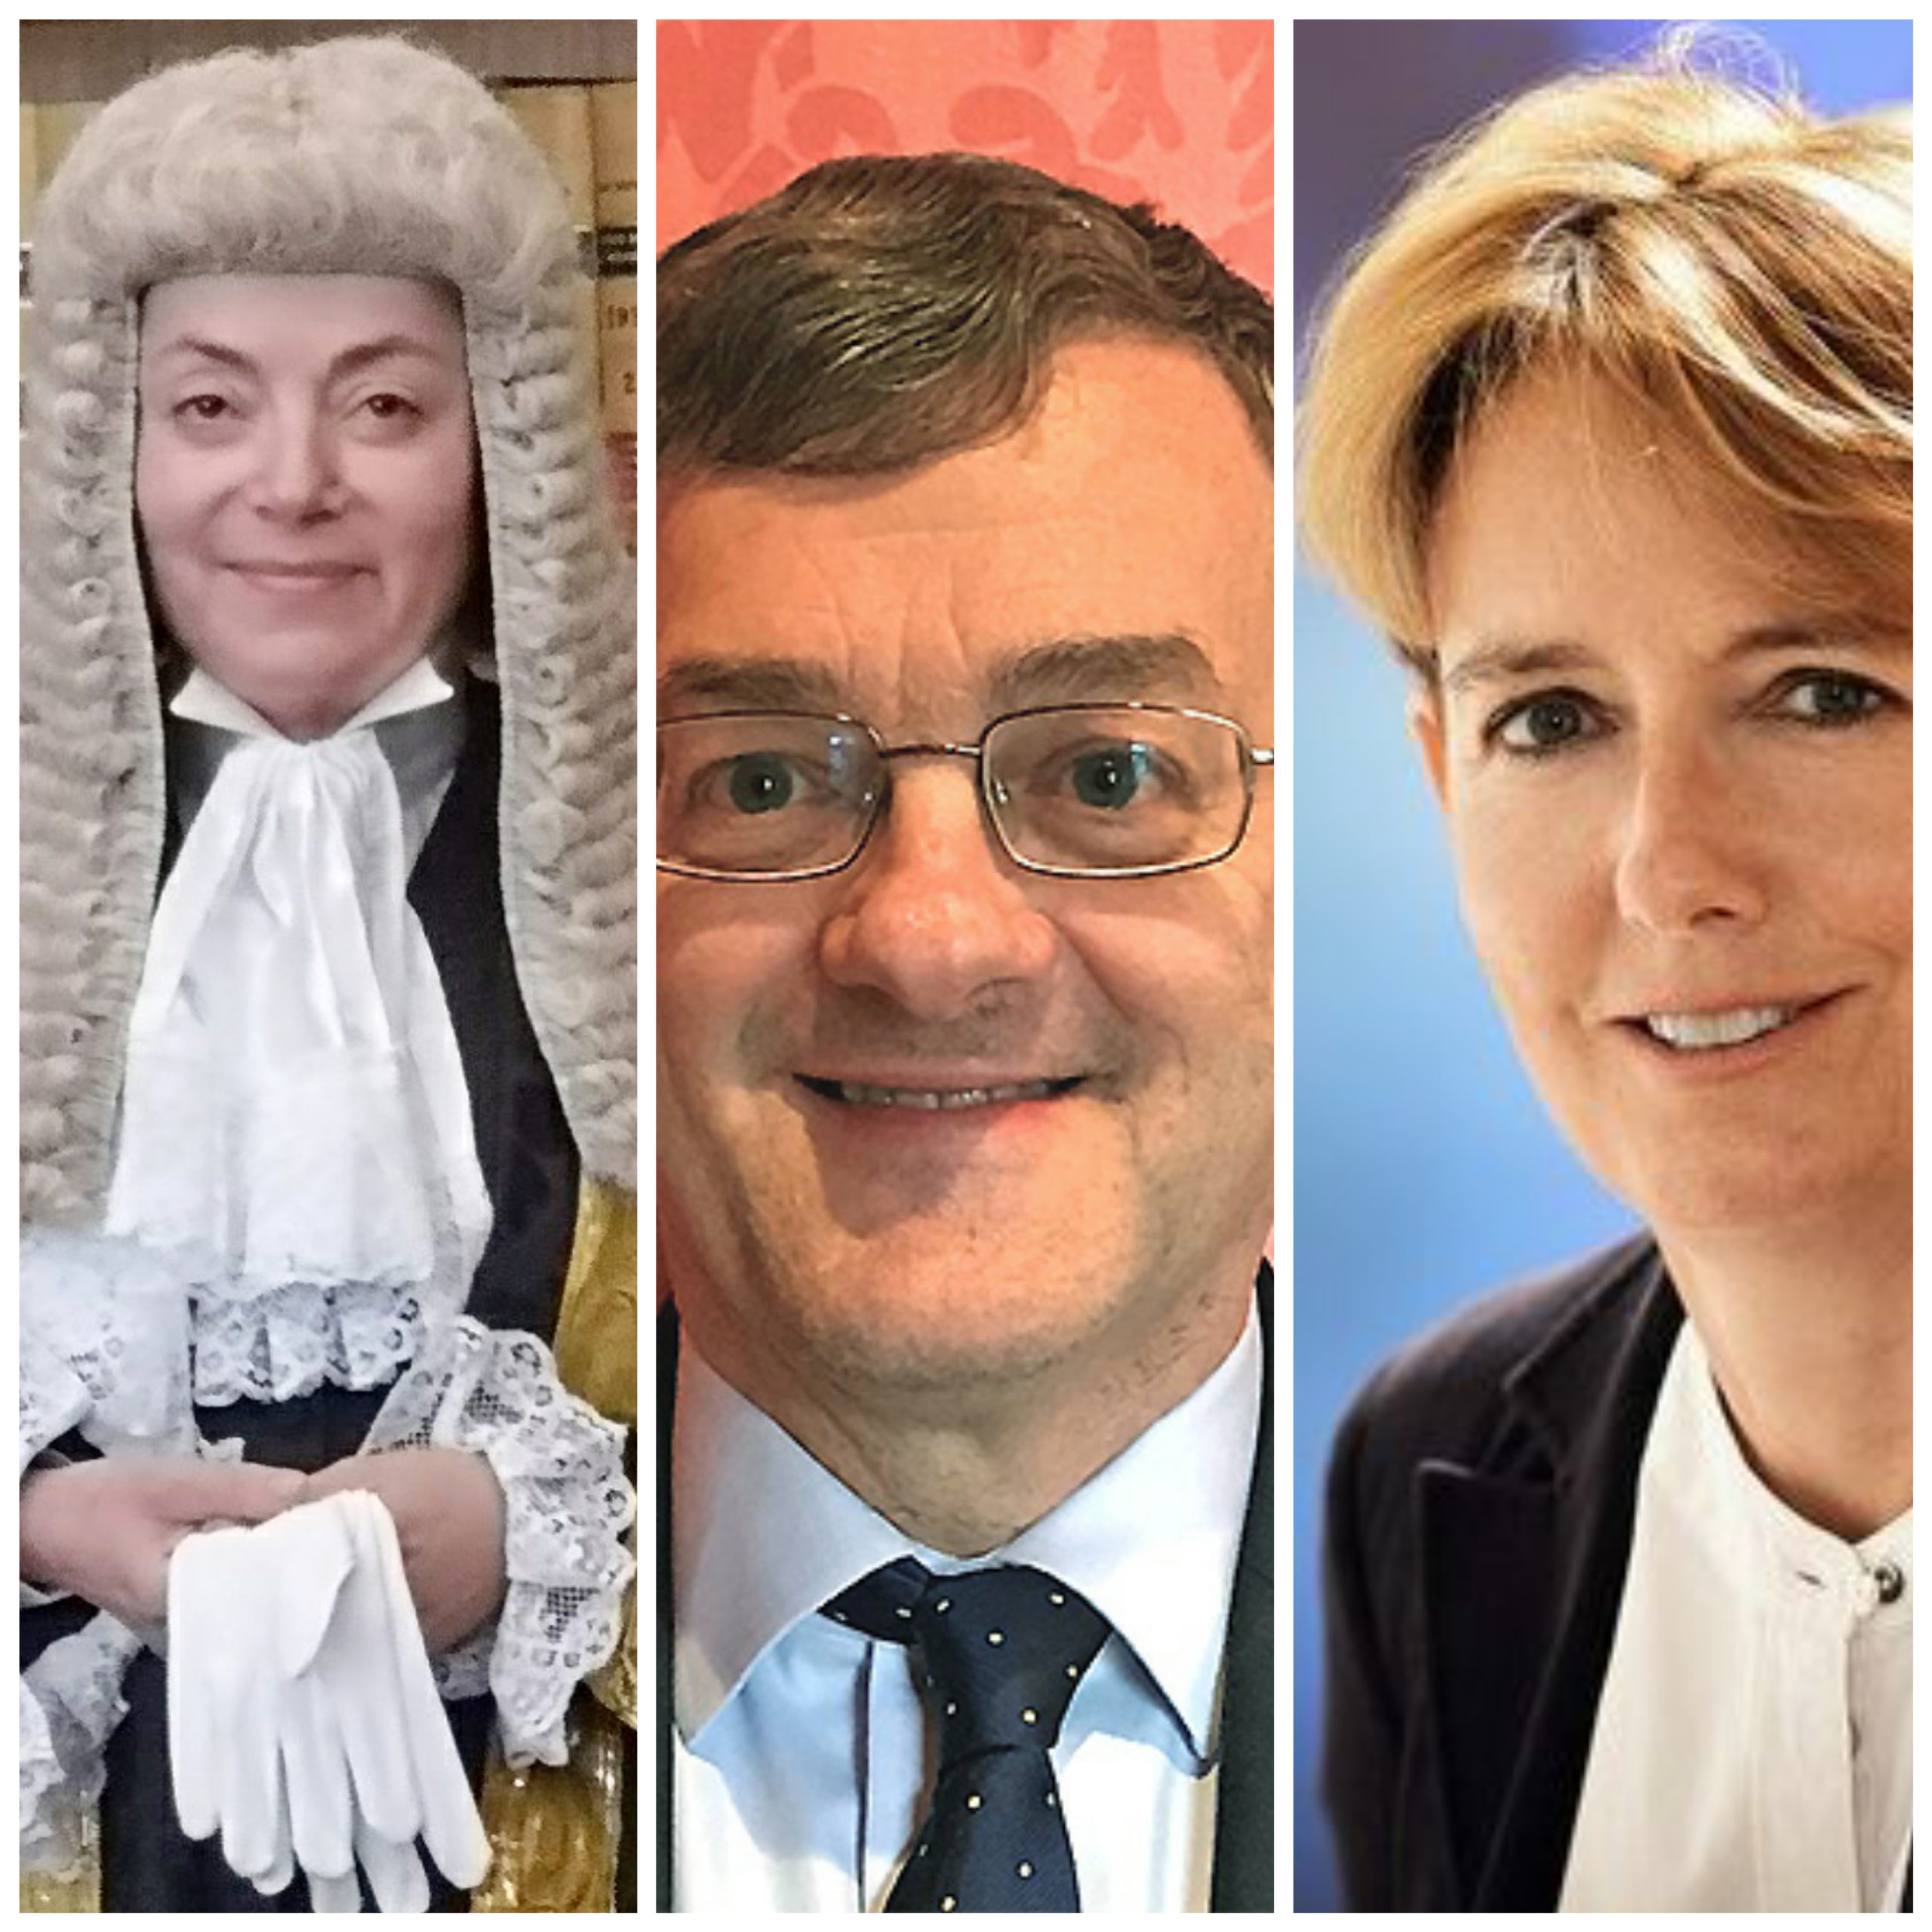 Common Sense Champions: Dame Victoria Sharp, Lord Justice Lewis, and Mrs Justice Lieven